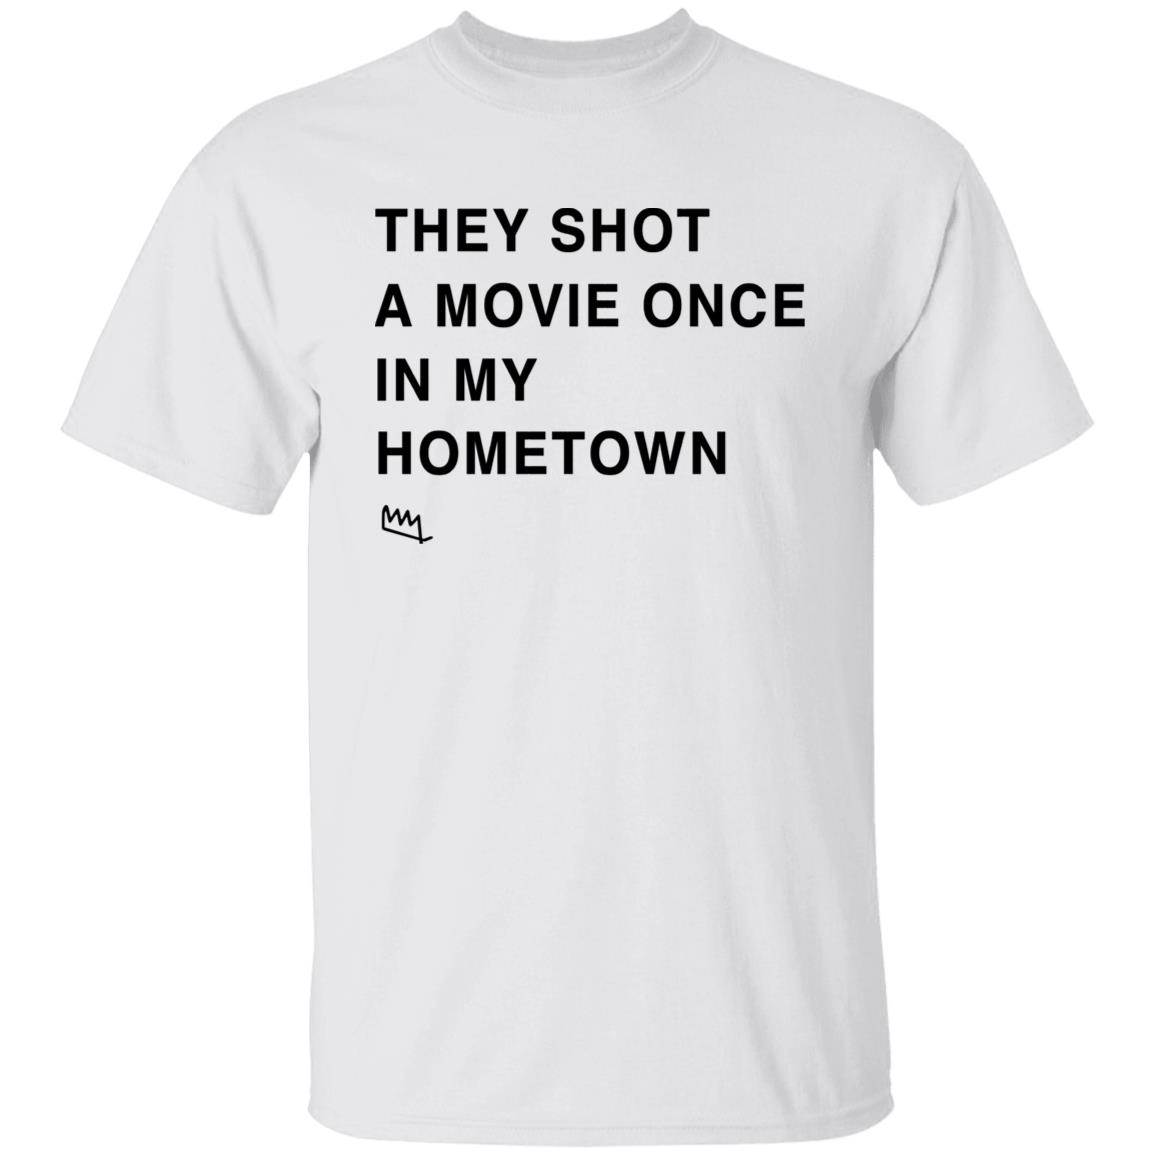 They Shot A Movie Once In My Hometown T-Shirt for Men, Women